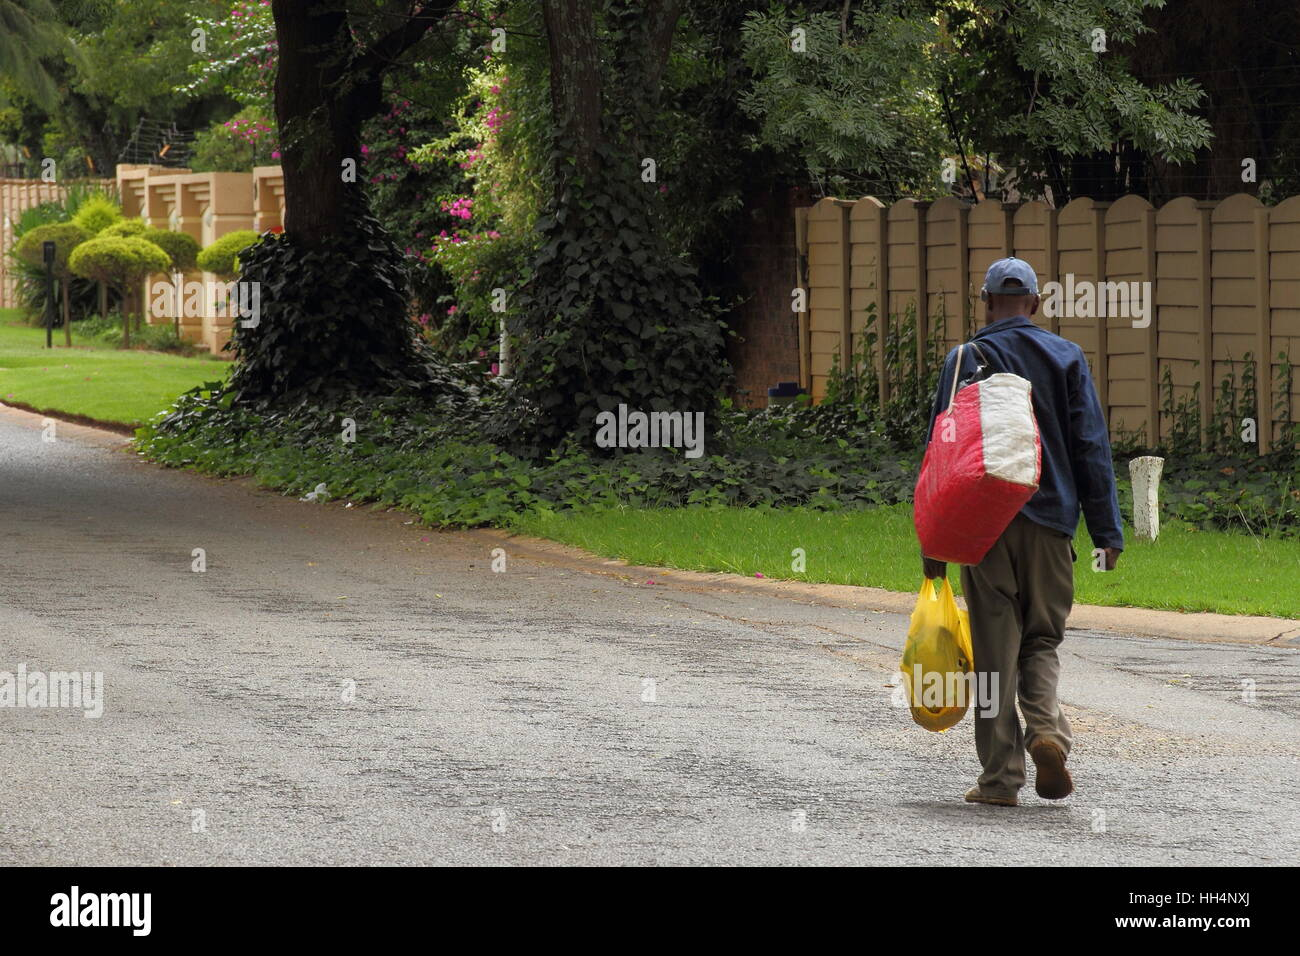 Homeless jobless man South Africa walks down a public street carrying his belongings image with copy space in landscape - Stock Image